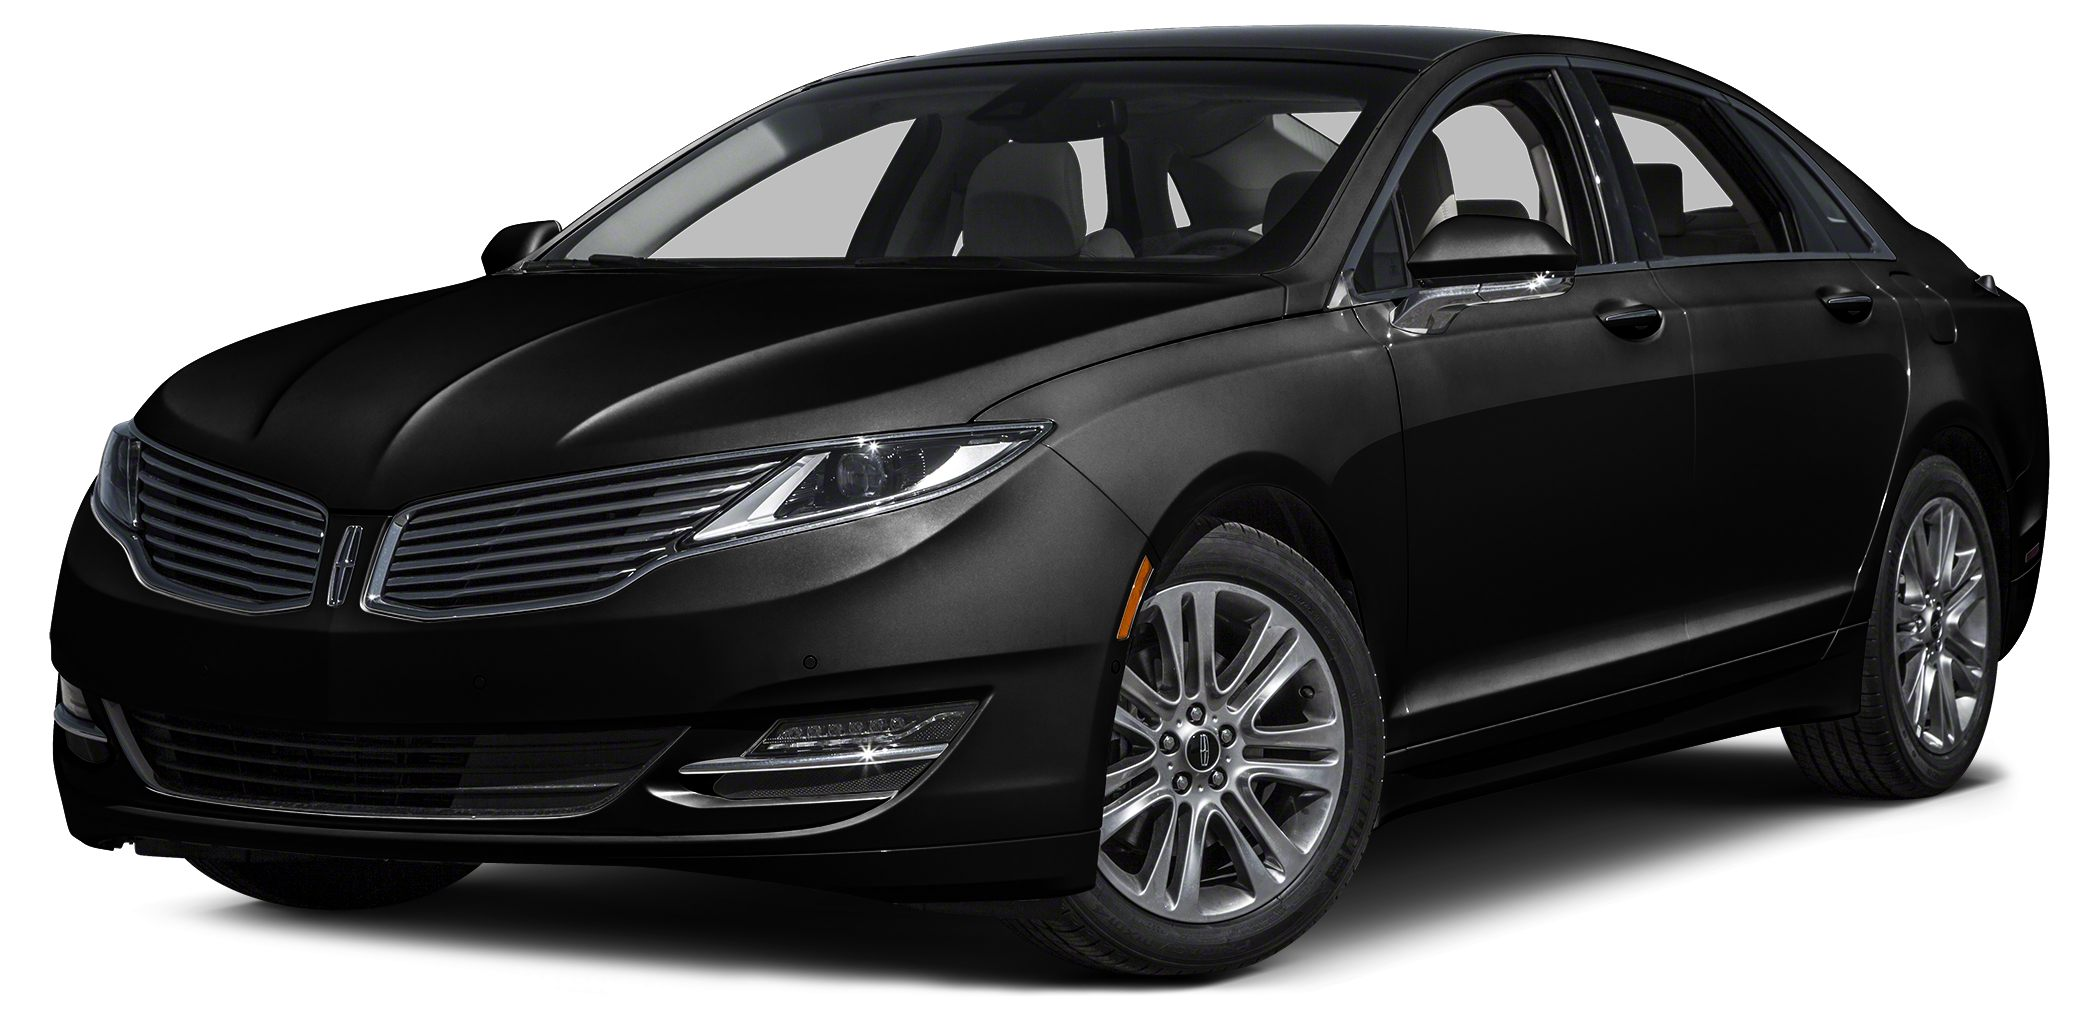 2014 Lincoln MKZ Base At Advantage Chrysler you know you are getting a safe and dependable vehicle